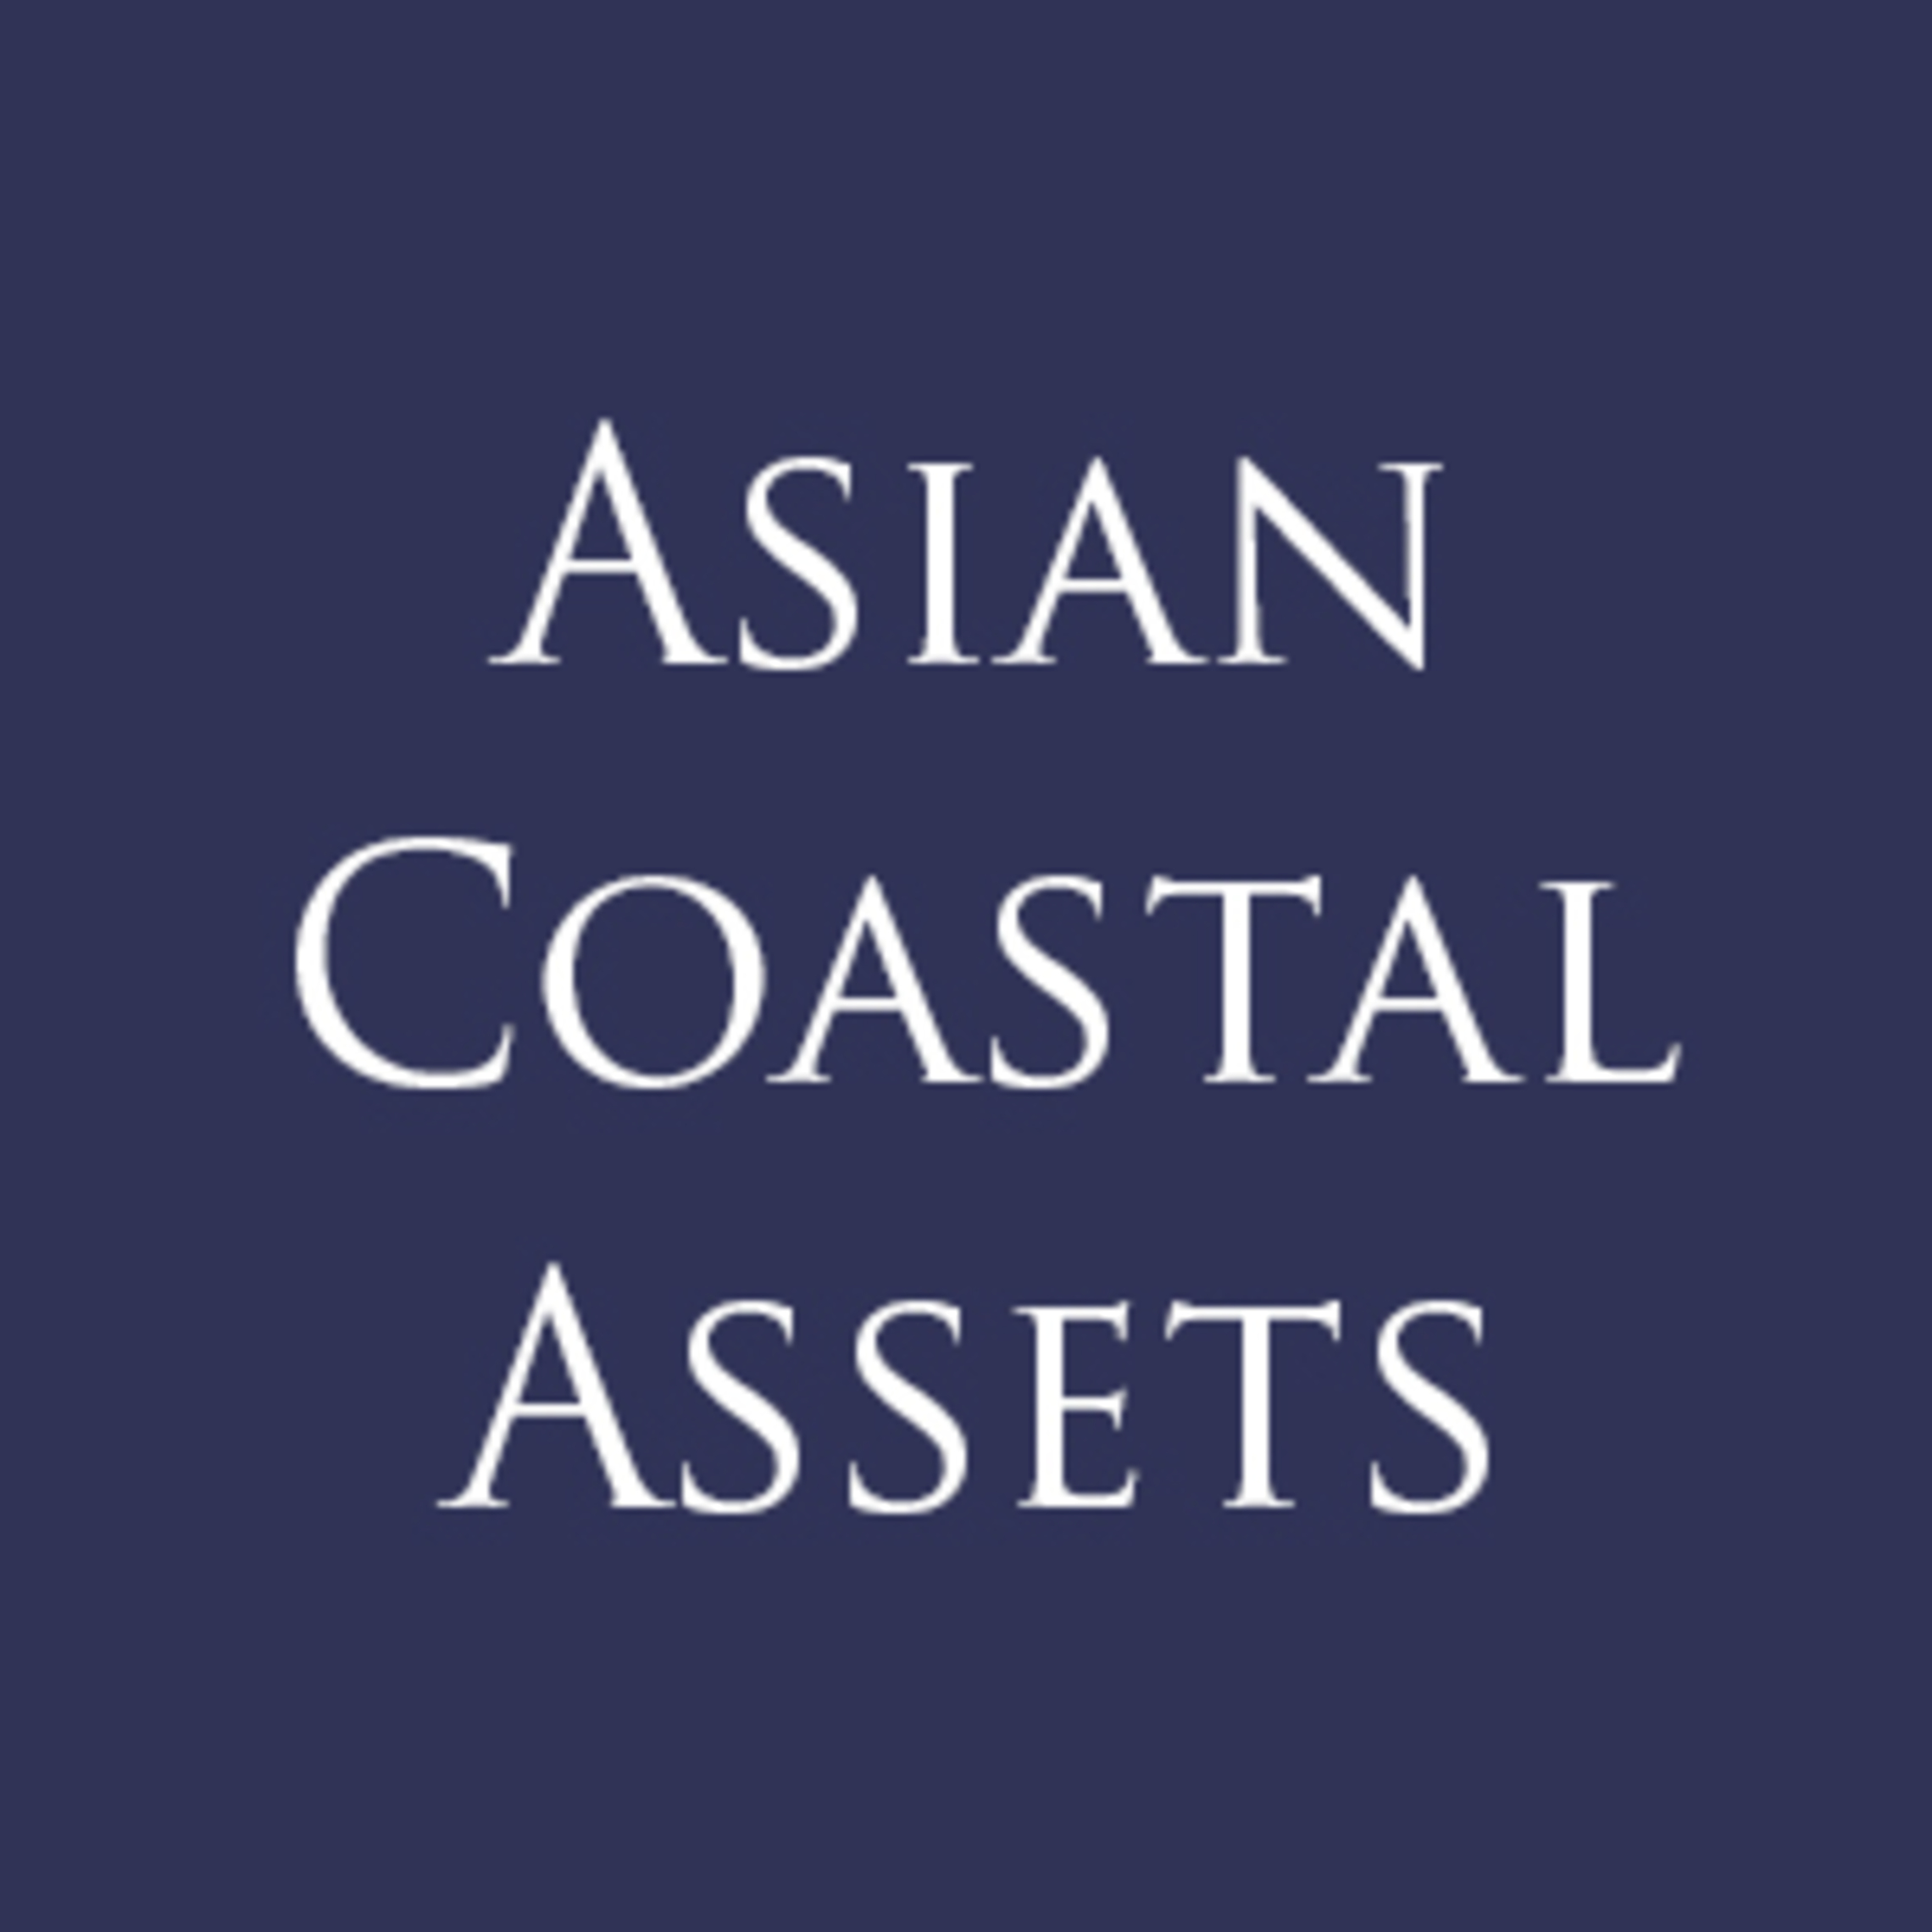 asian coastal assets- company logo